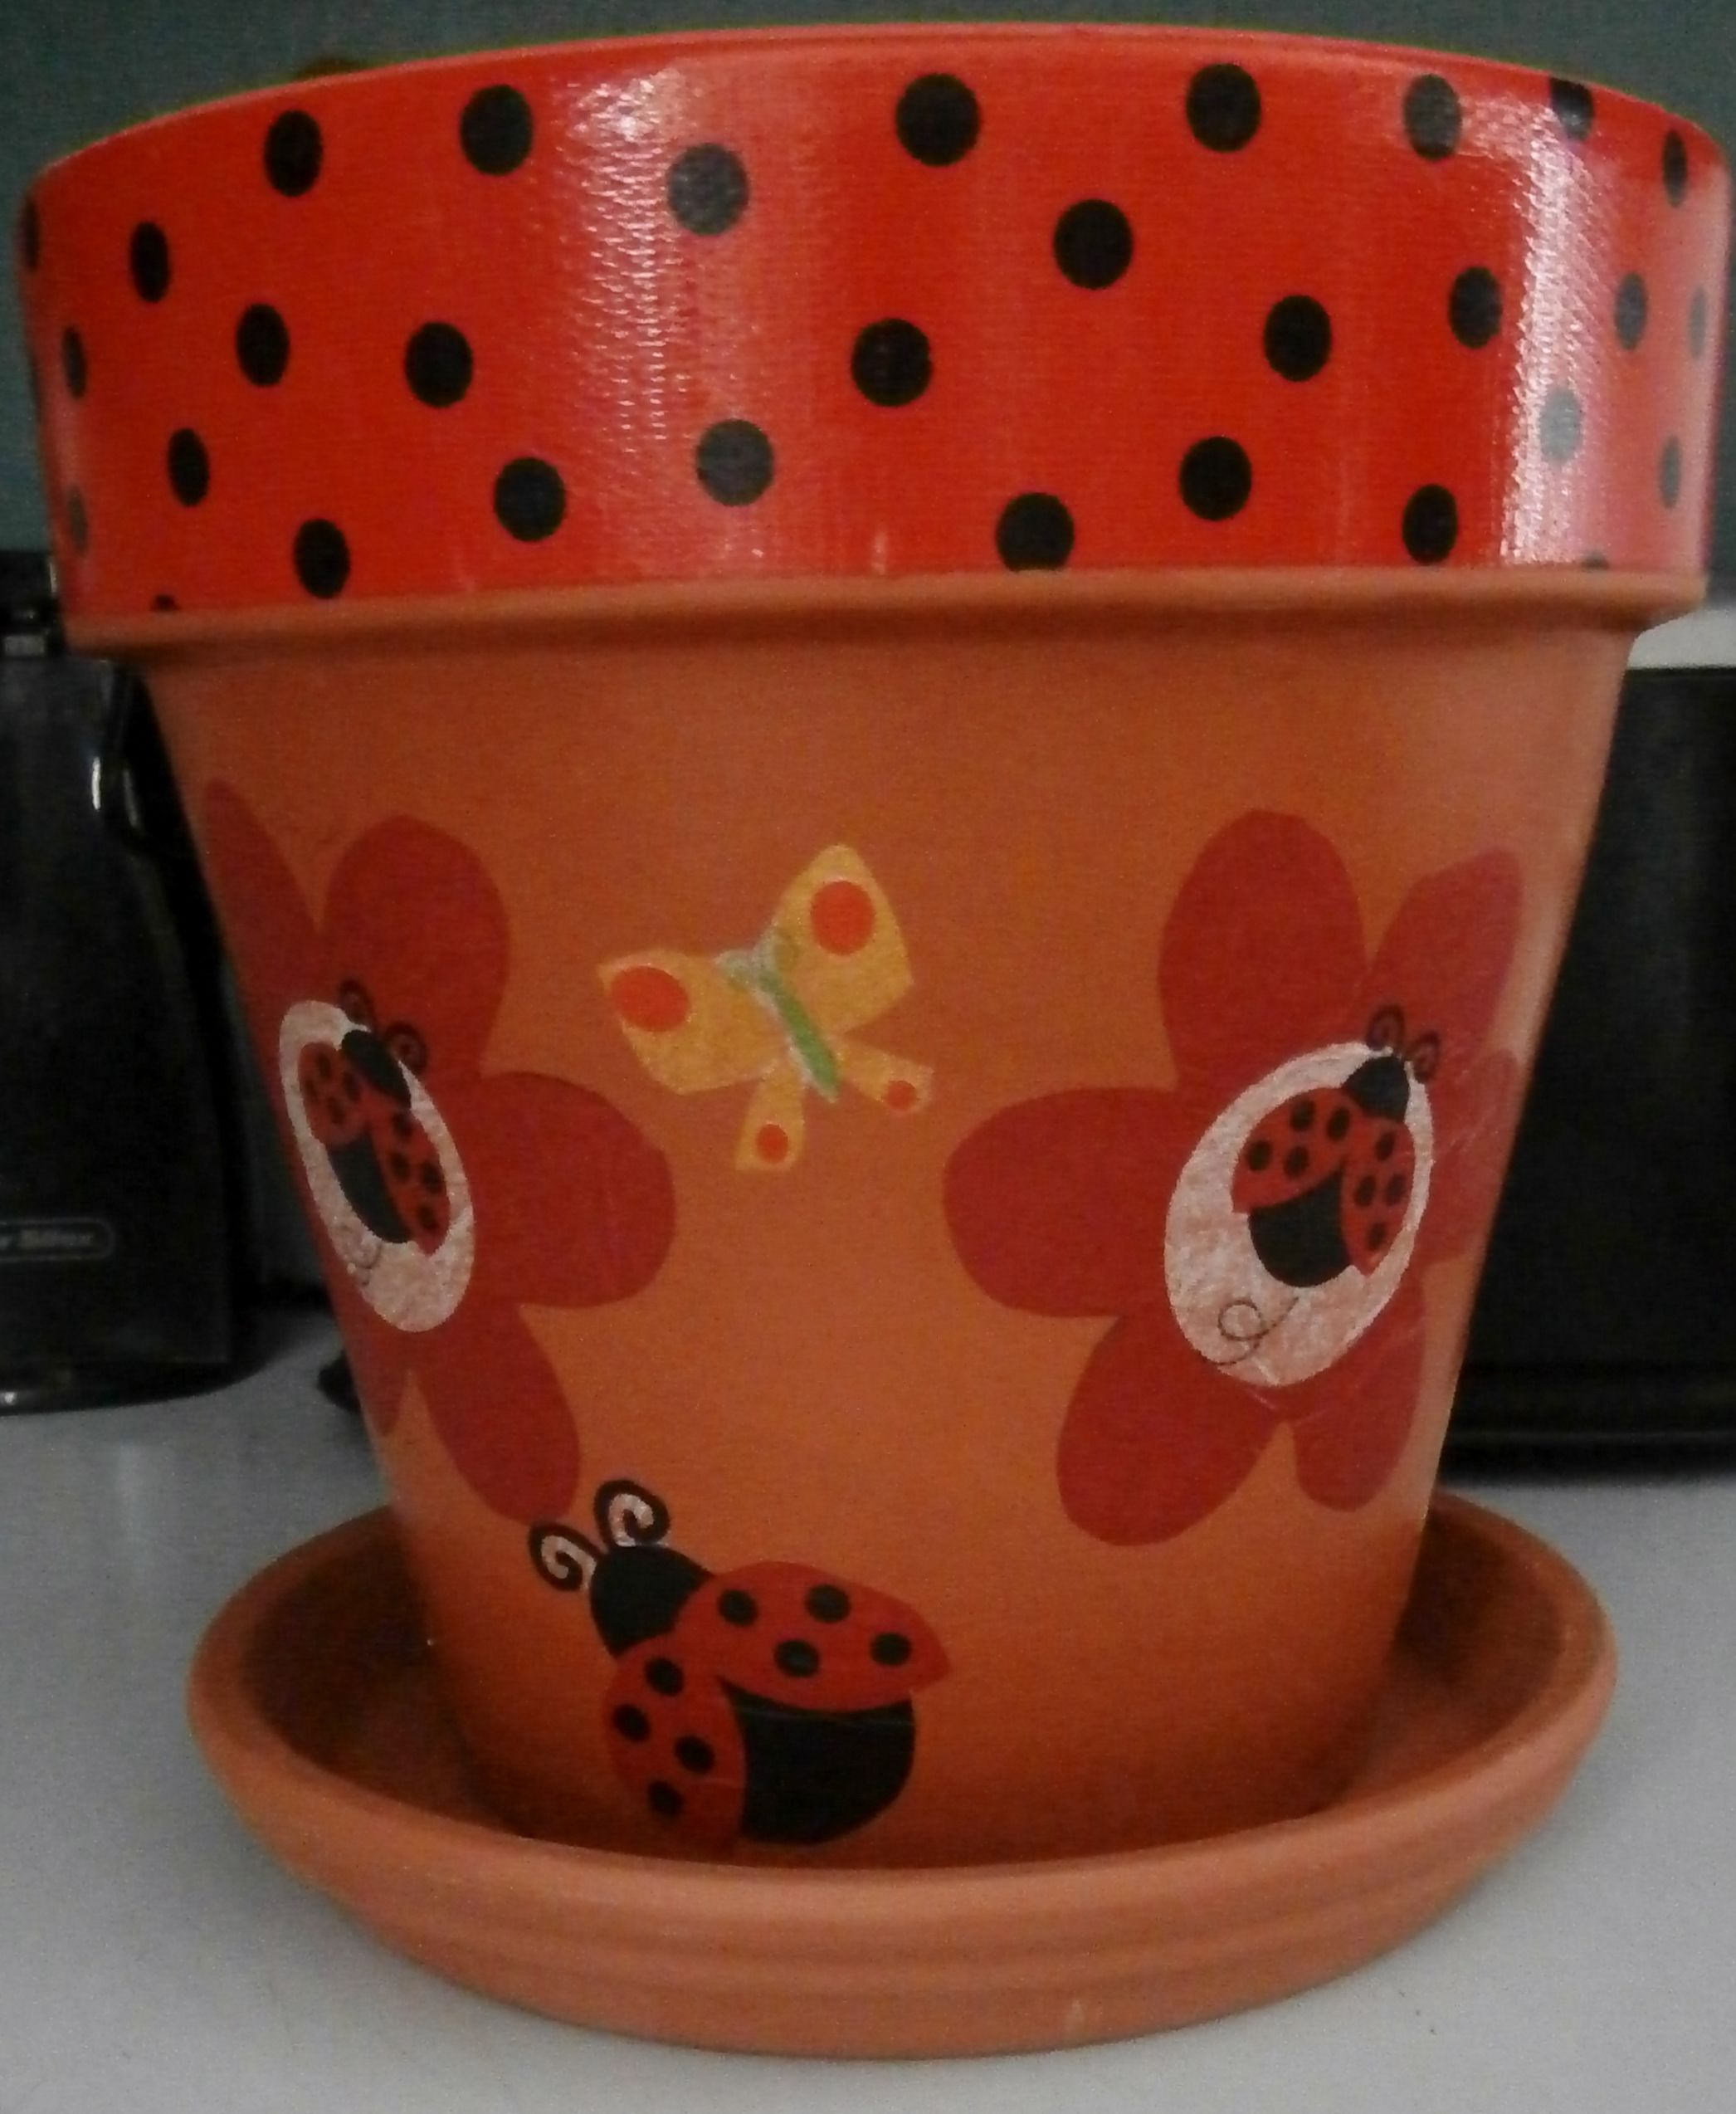 lady bug flower pot i made 5/17/13.   my completed craft projects